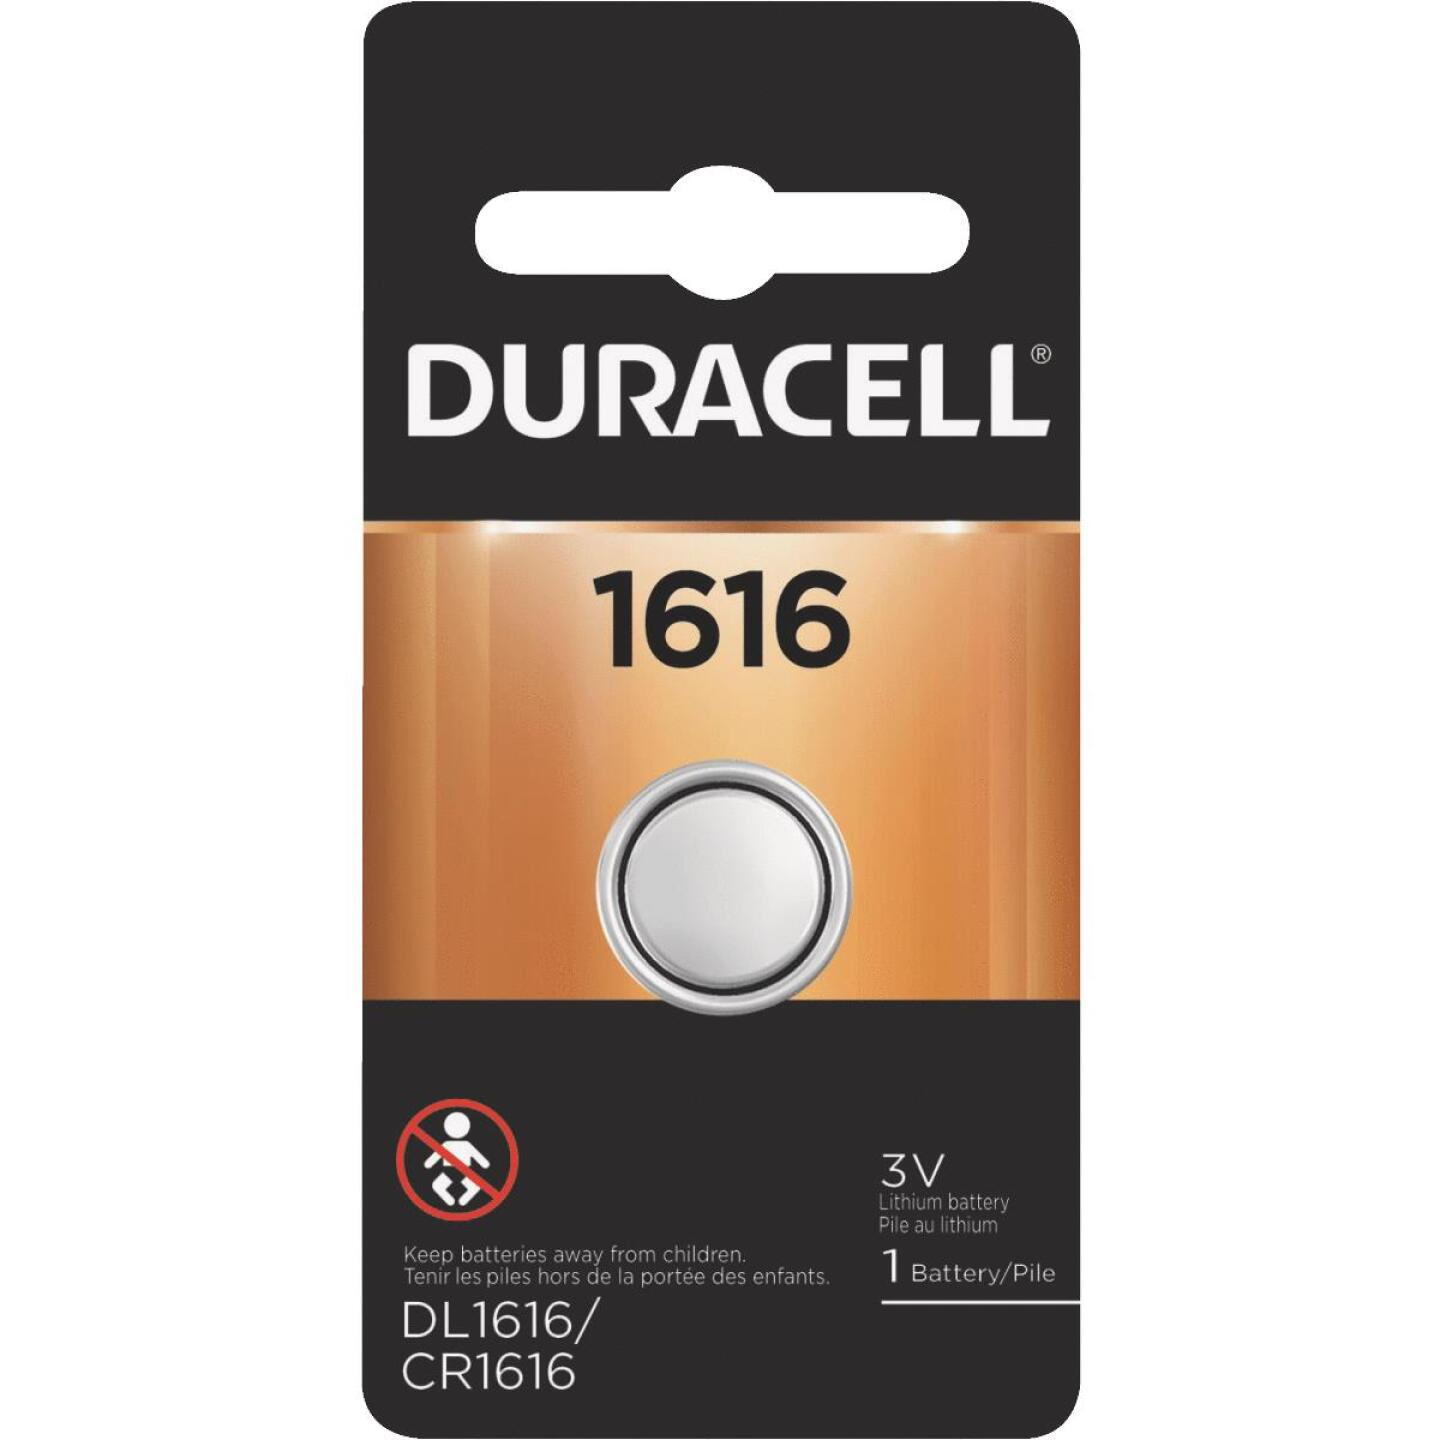 Duracell 1616 Lithium Coin Cell Battery Image 1